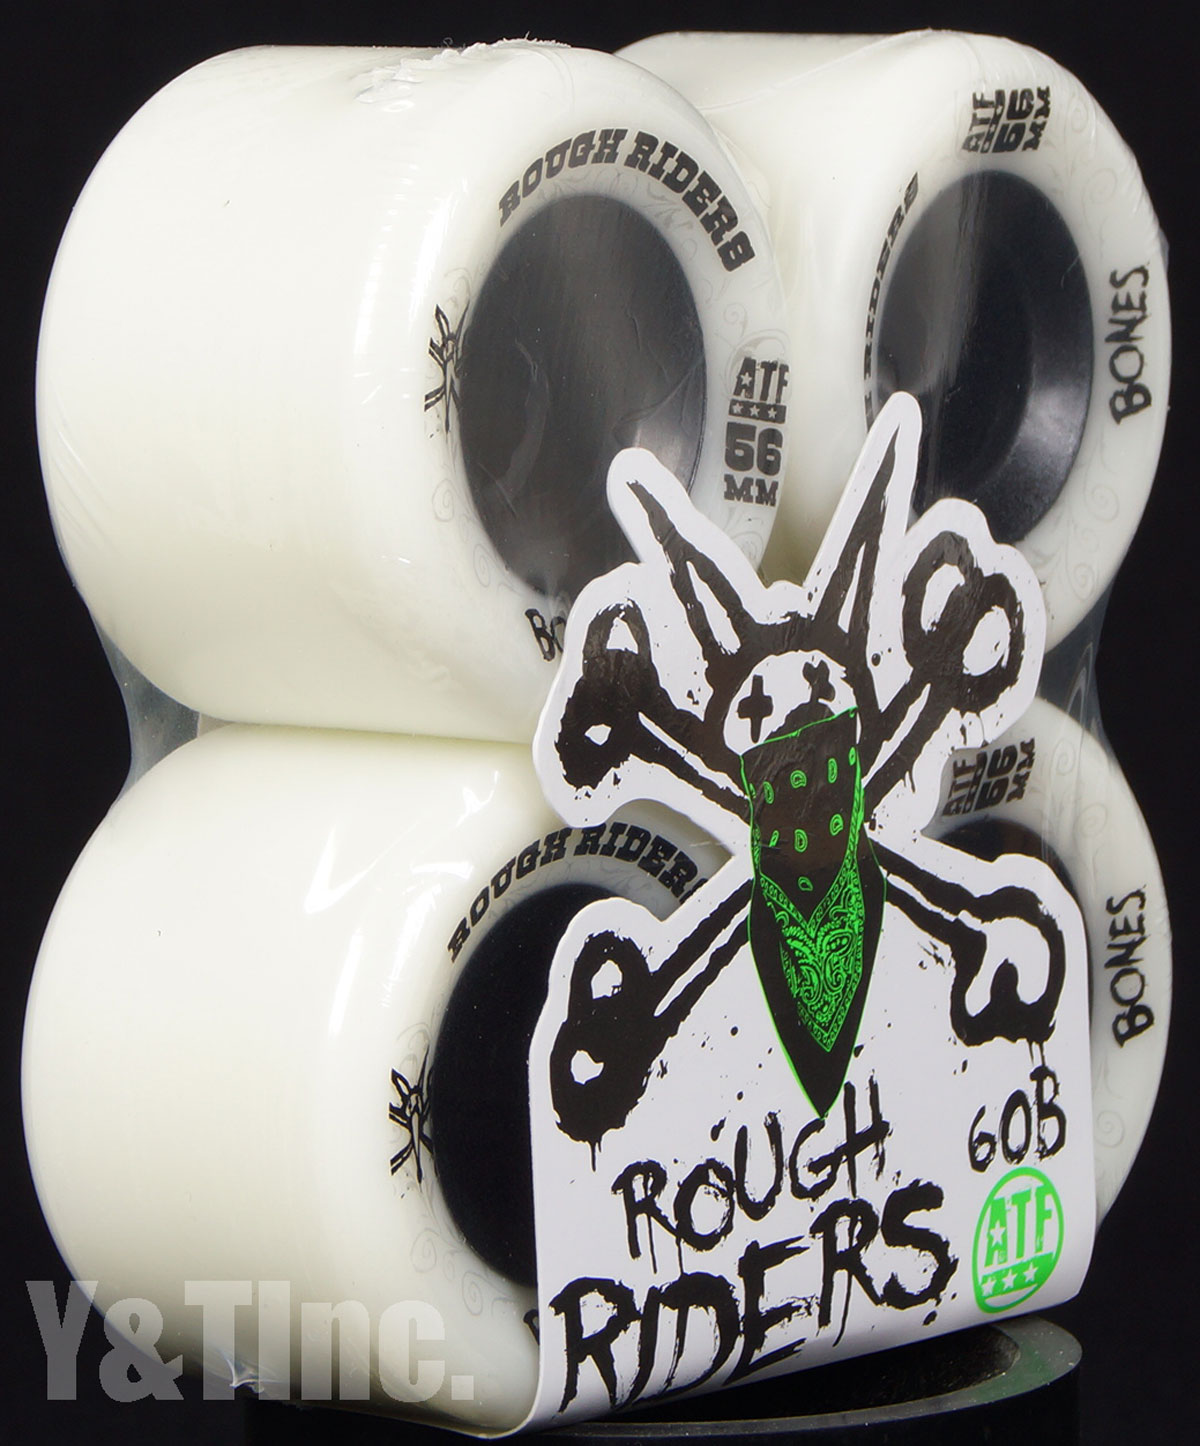 BONES ATF ROUGH RIDERS 56mm 80a White 2